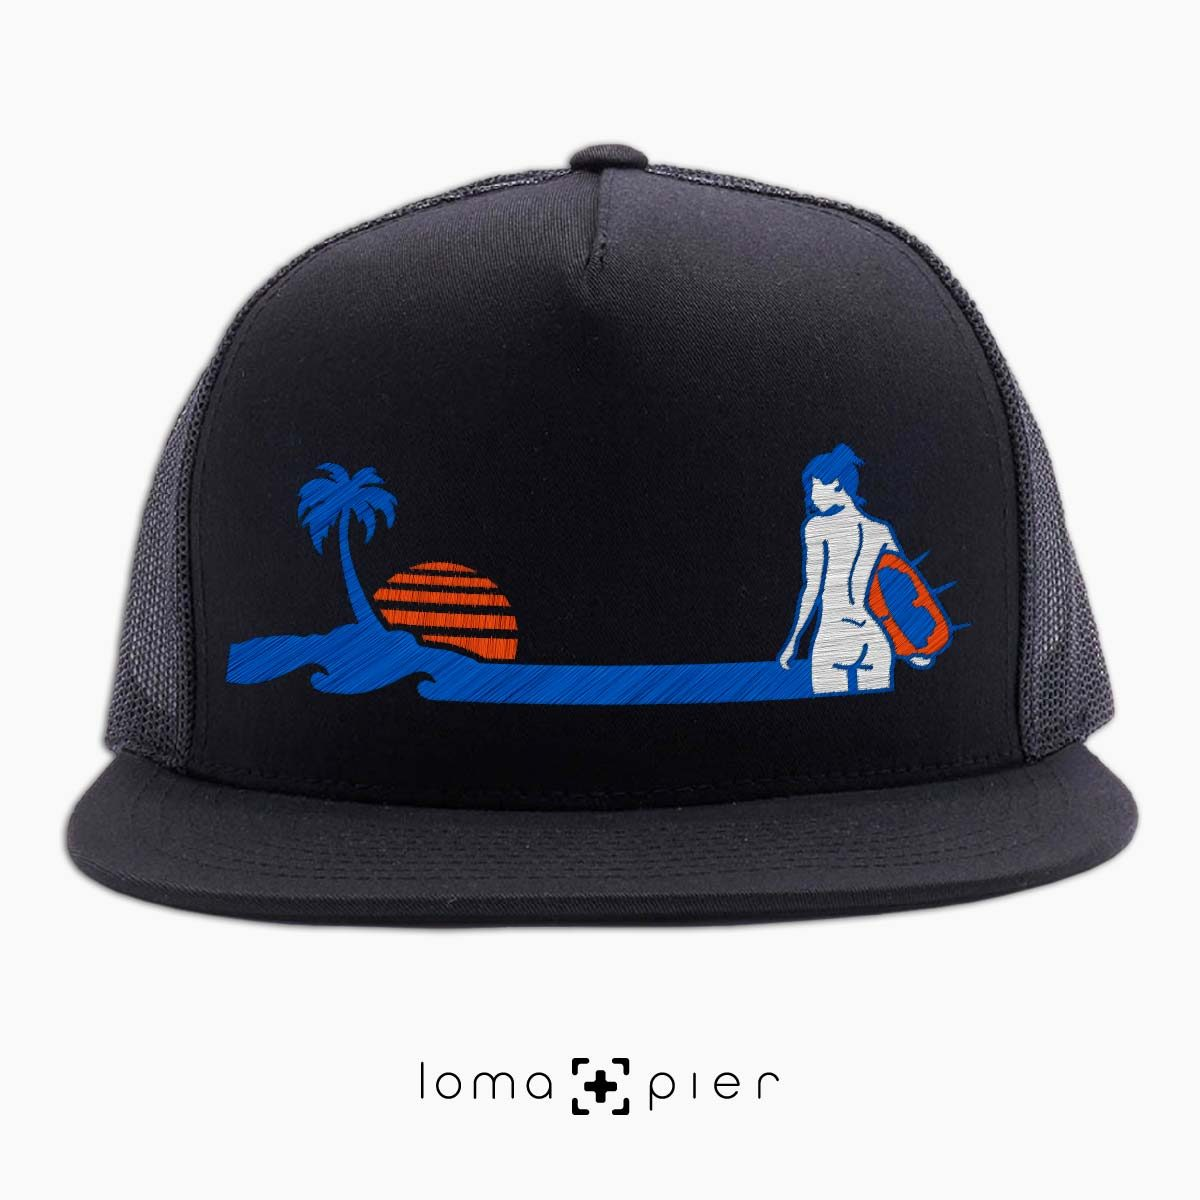 SURF NAKED hermosa beach black netback trucker hat design by KIKICUTT for loma+pier hat store